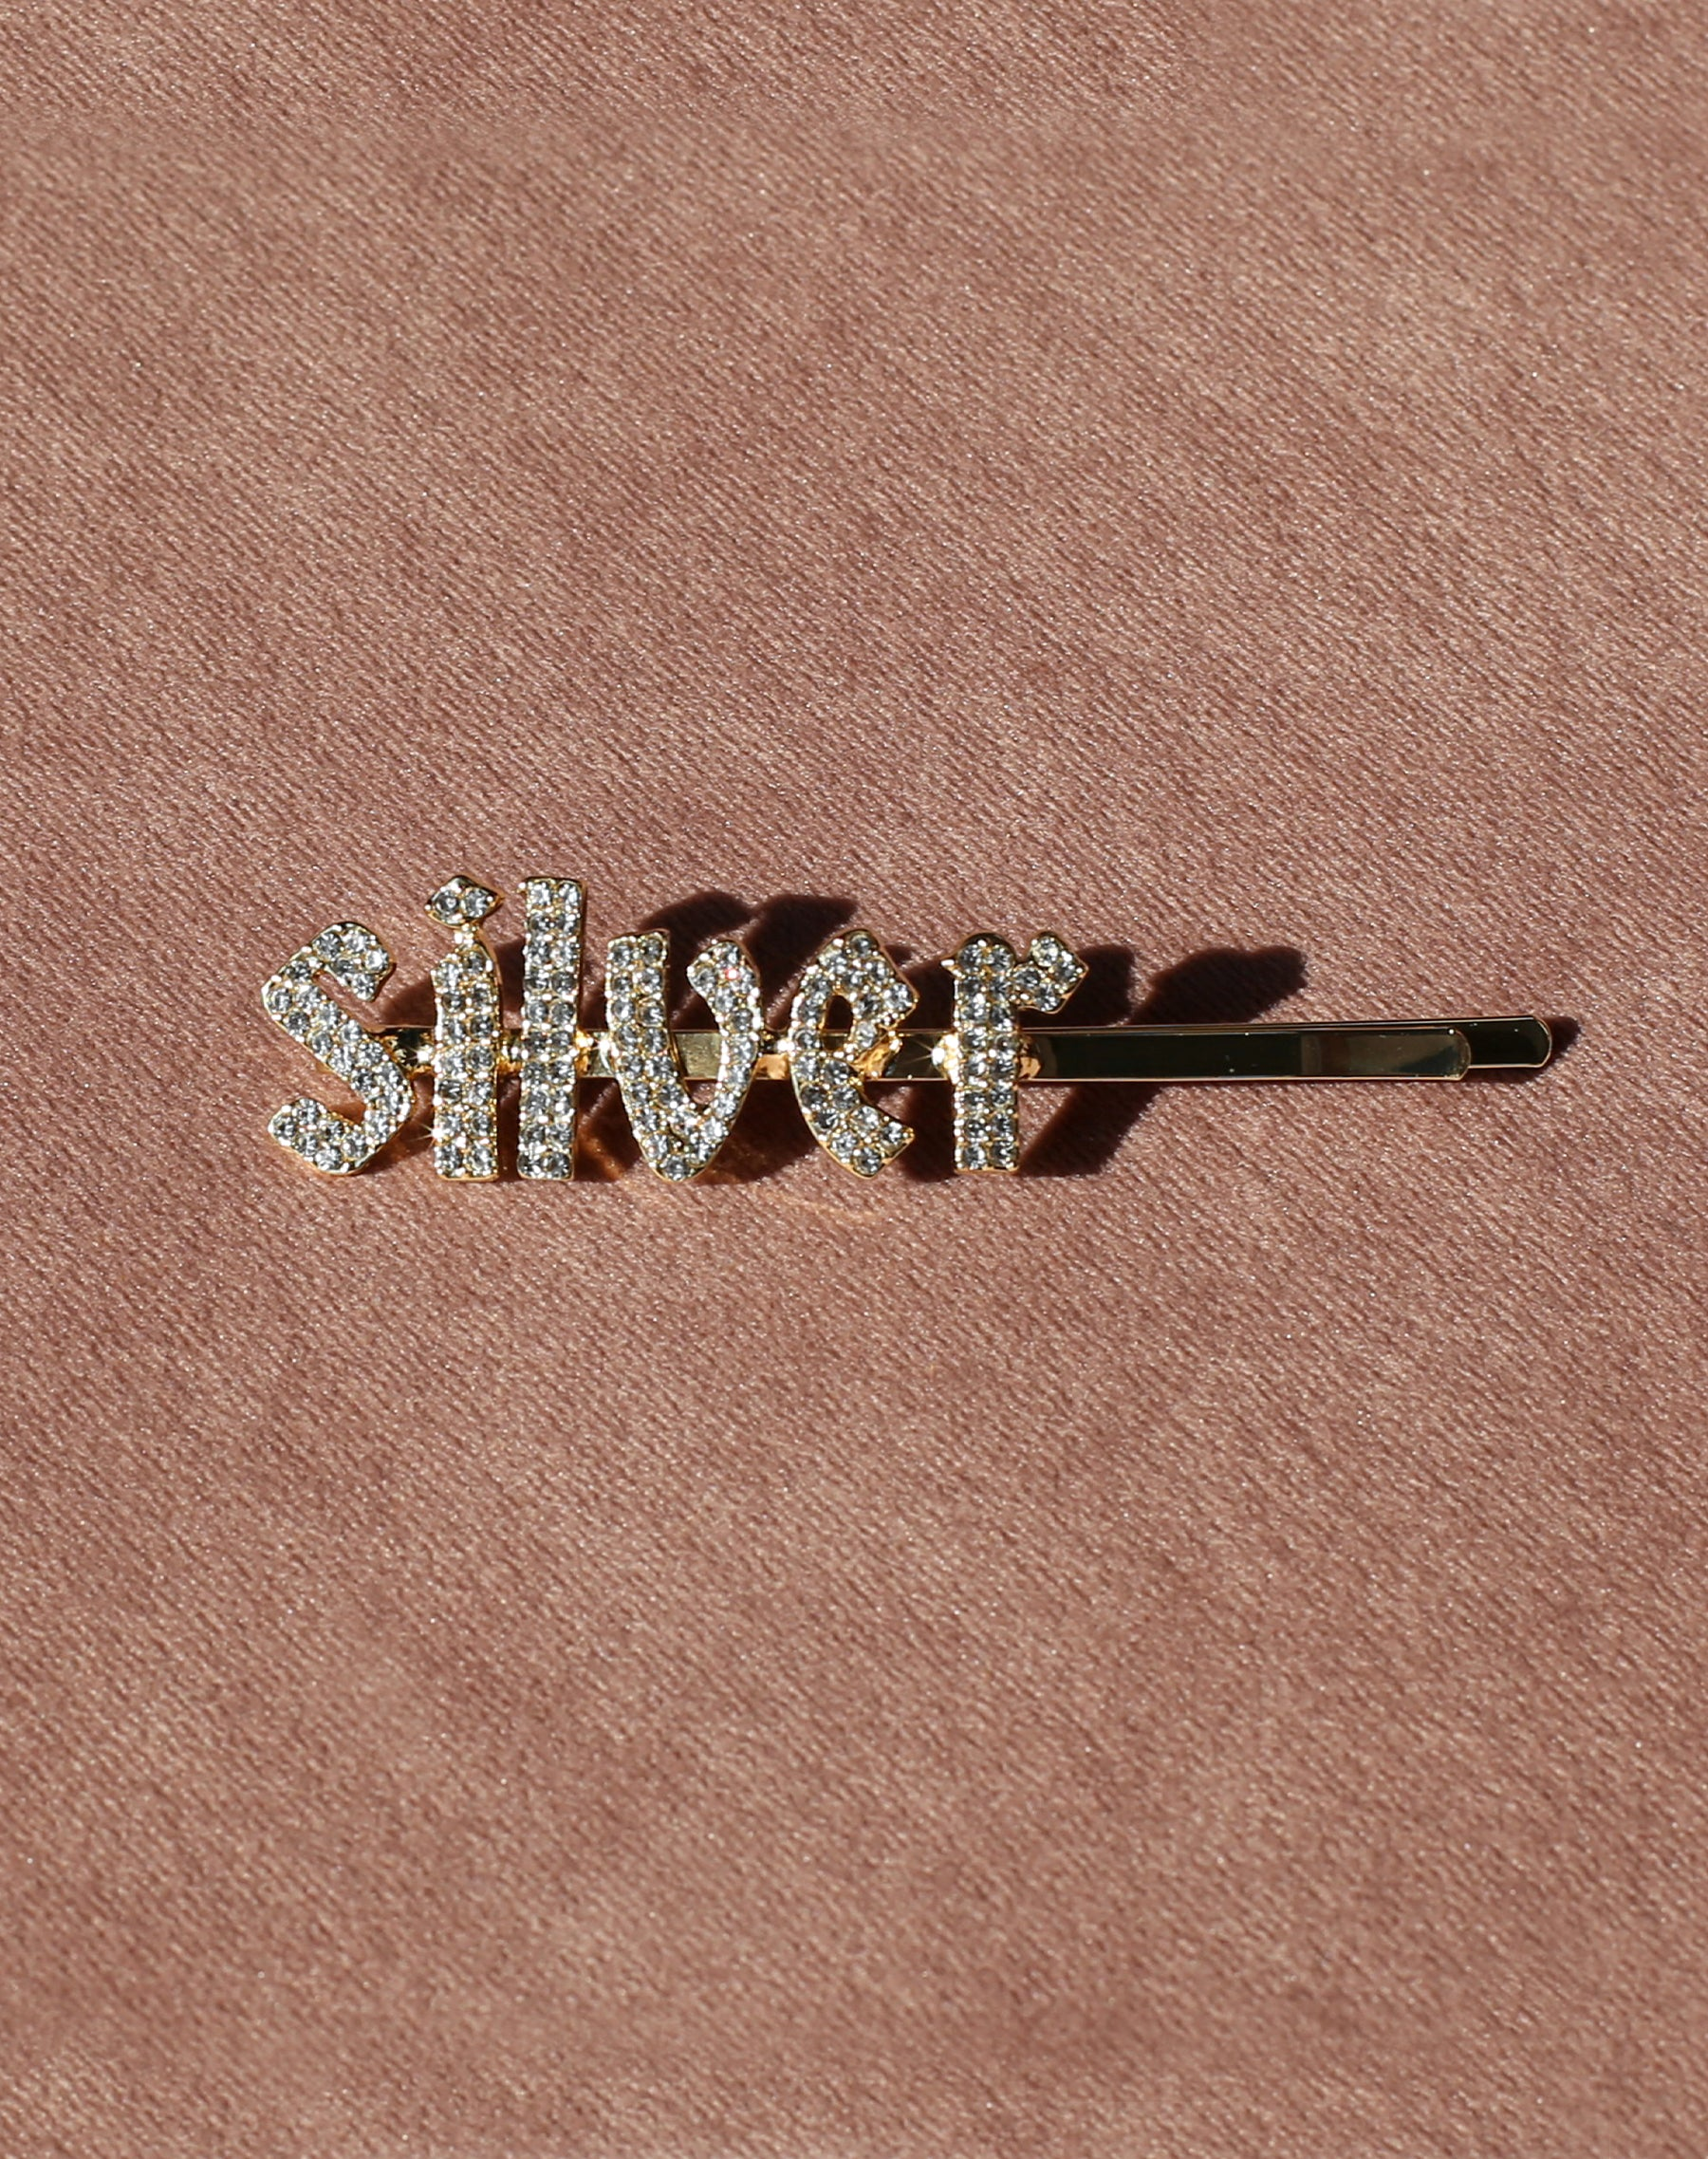 This is a photo of the Silver Rhinestone Hair Clip in Gold by Brunette the Label.